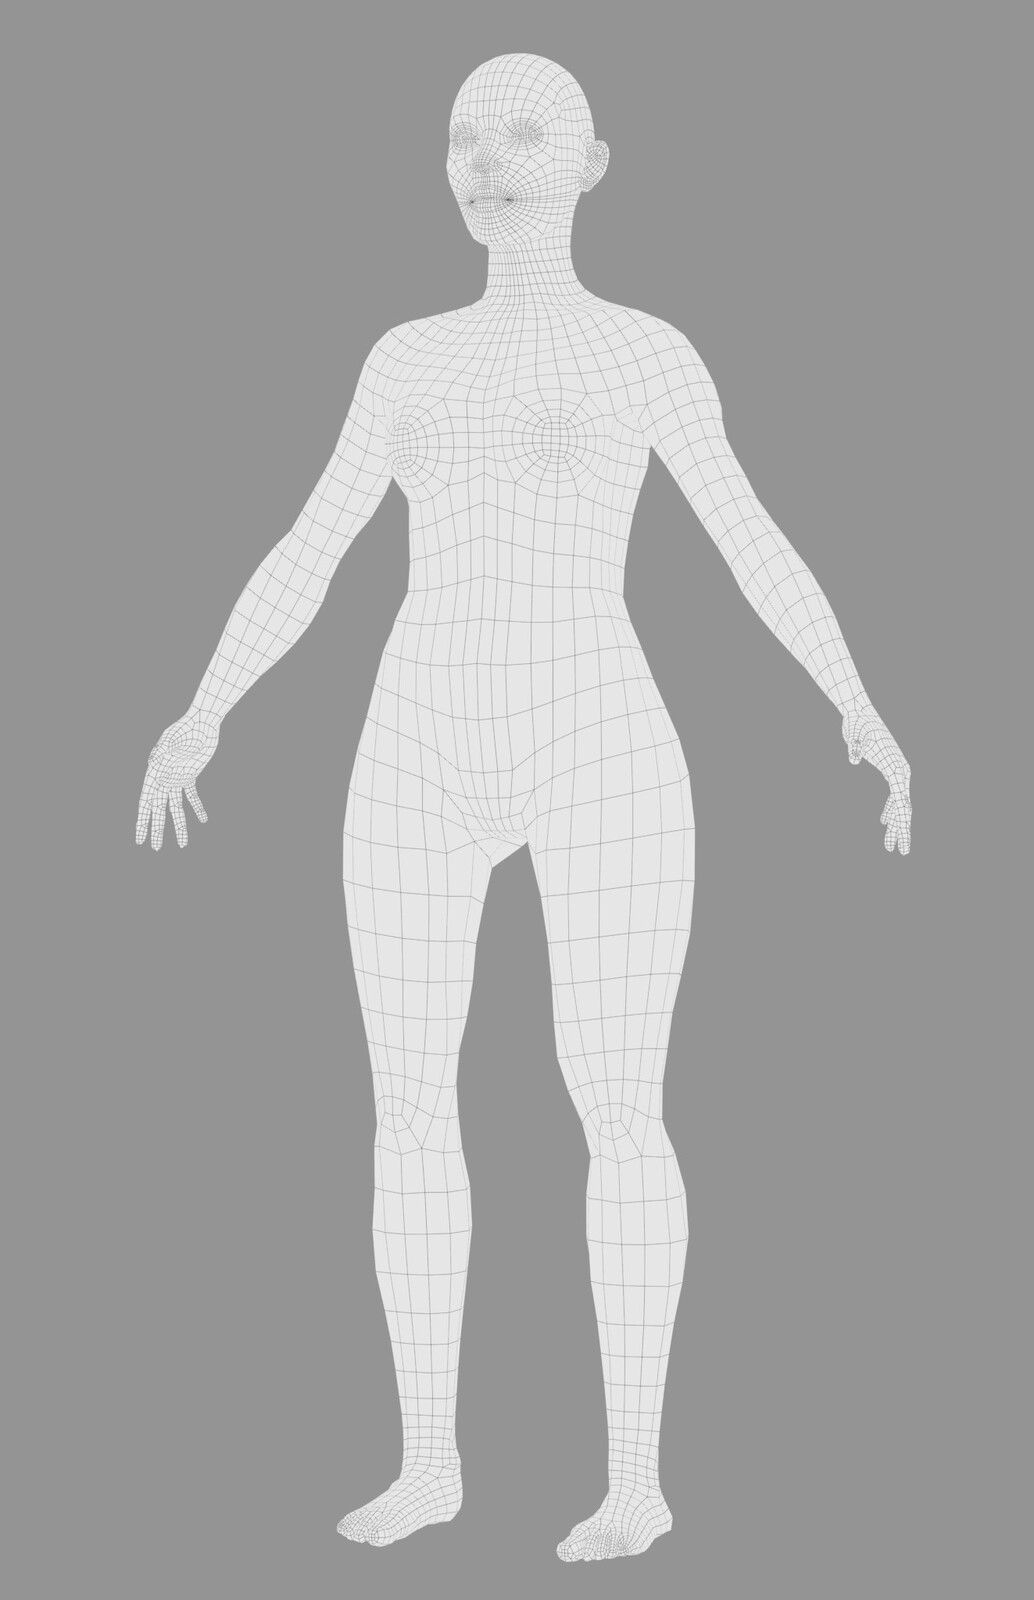 Practiced retopology on the skin, even though this is not a production character, but a concept character.